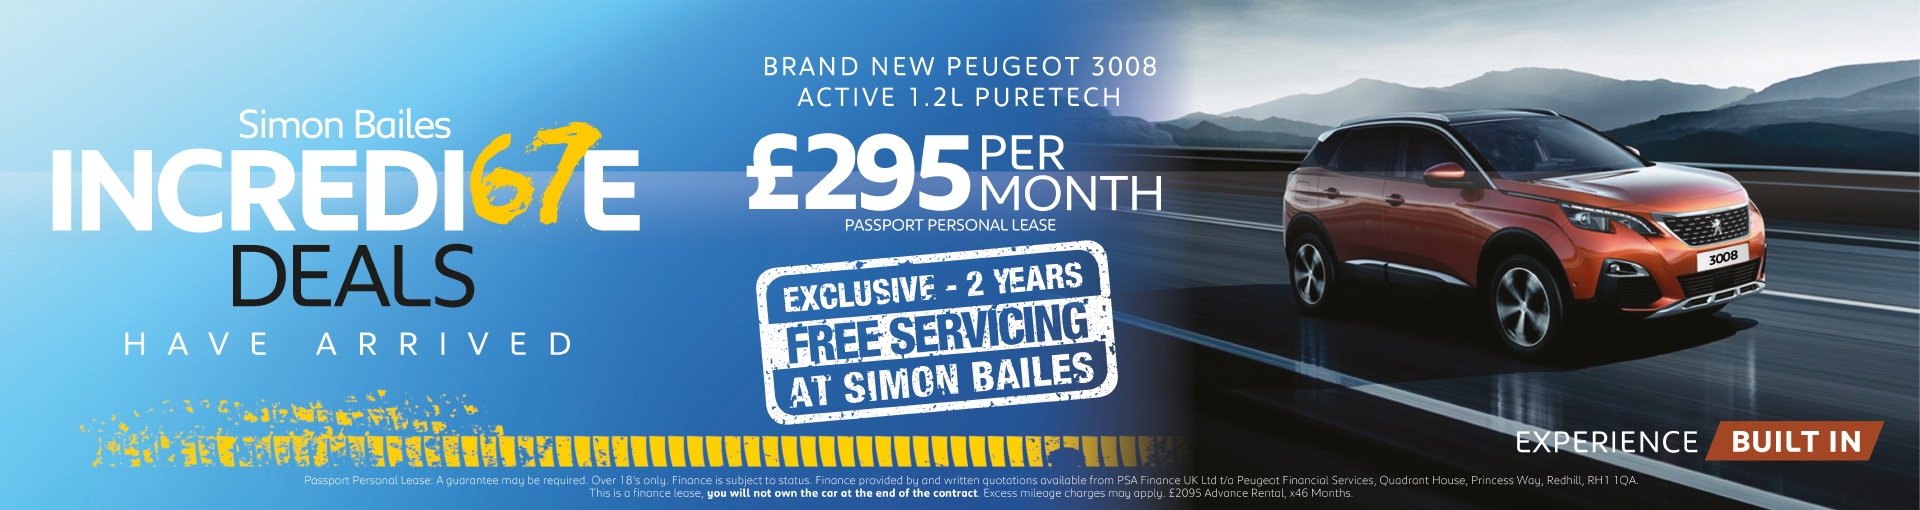 Peugeot 3008 SUV - £295 per month